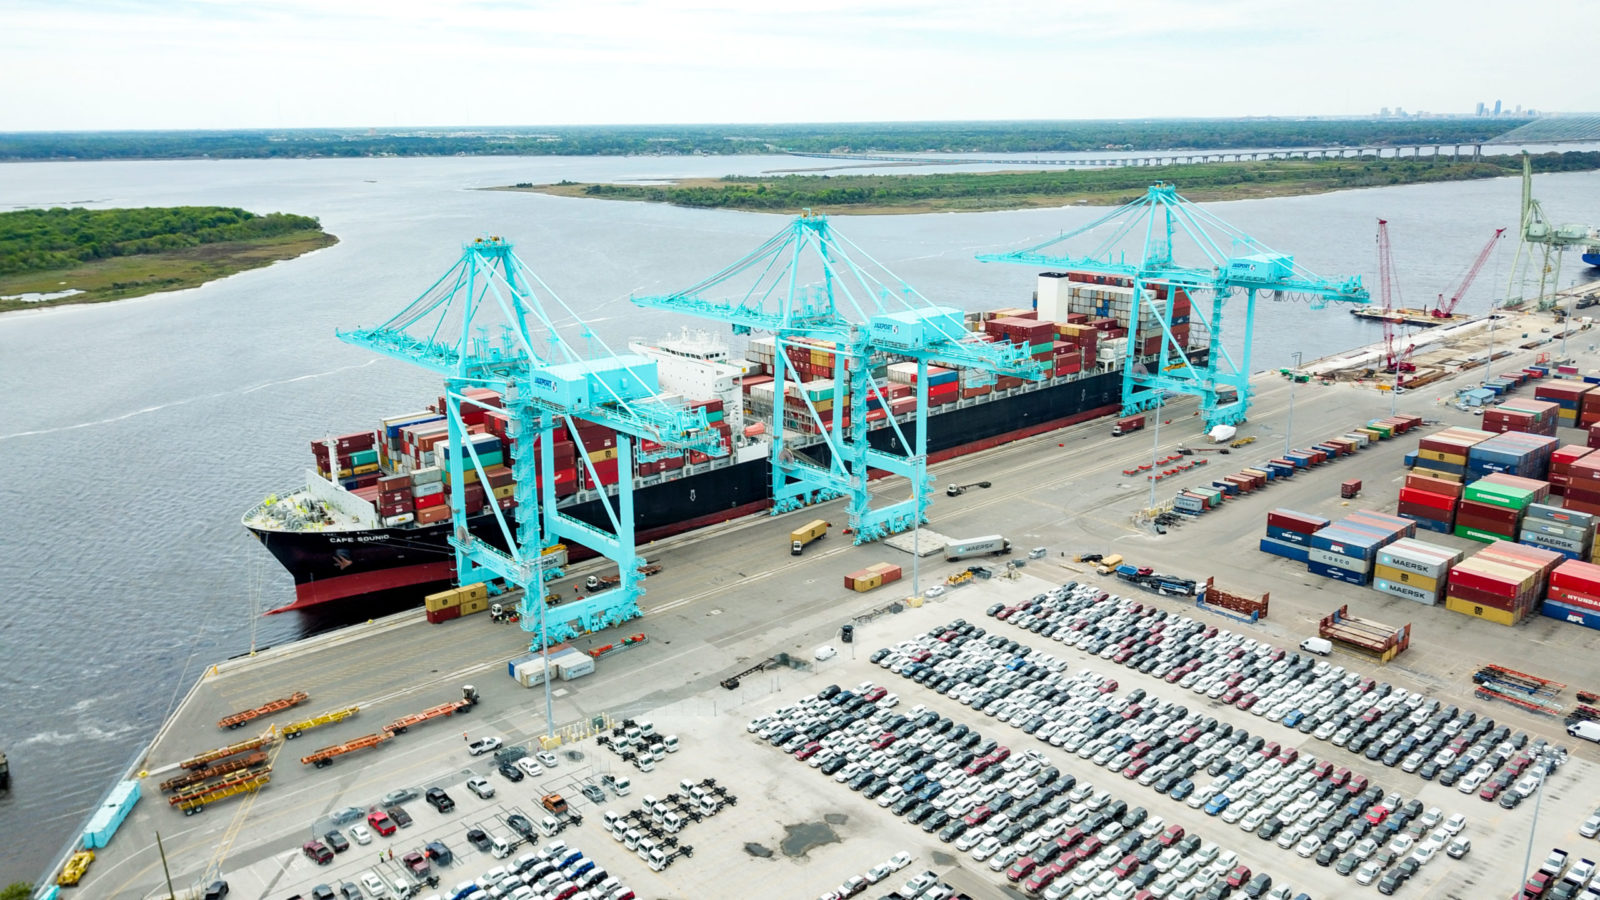 jaxport-sets-record-with-largest-container-ship-to-call-jacksonville_46499404265_o-scaled-e1589996928874.jpg